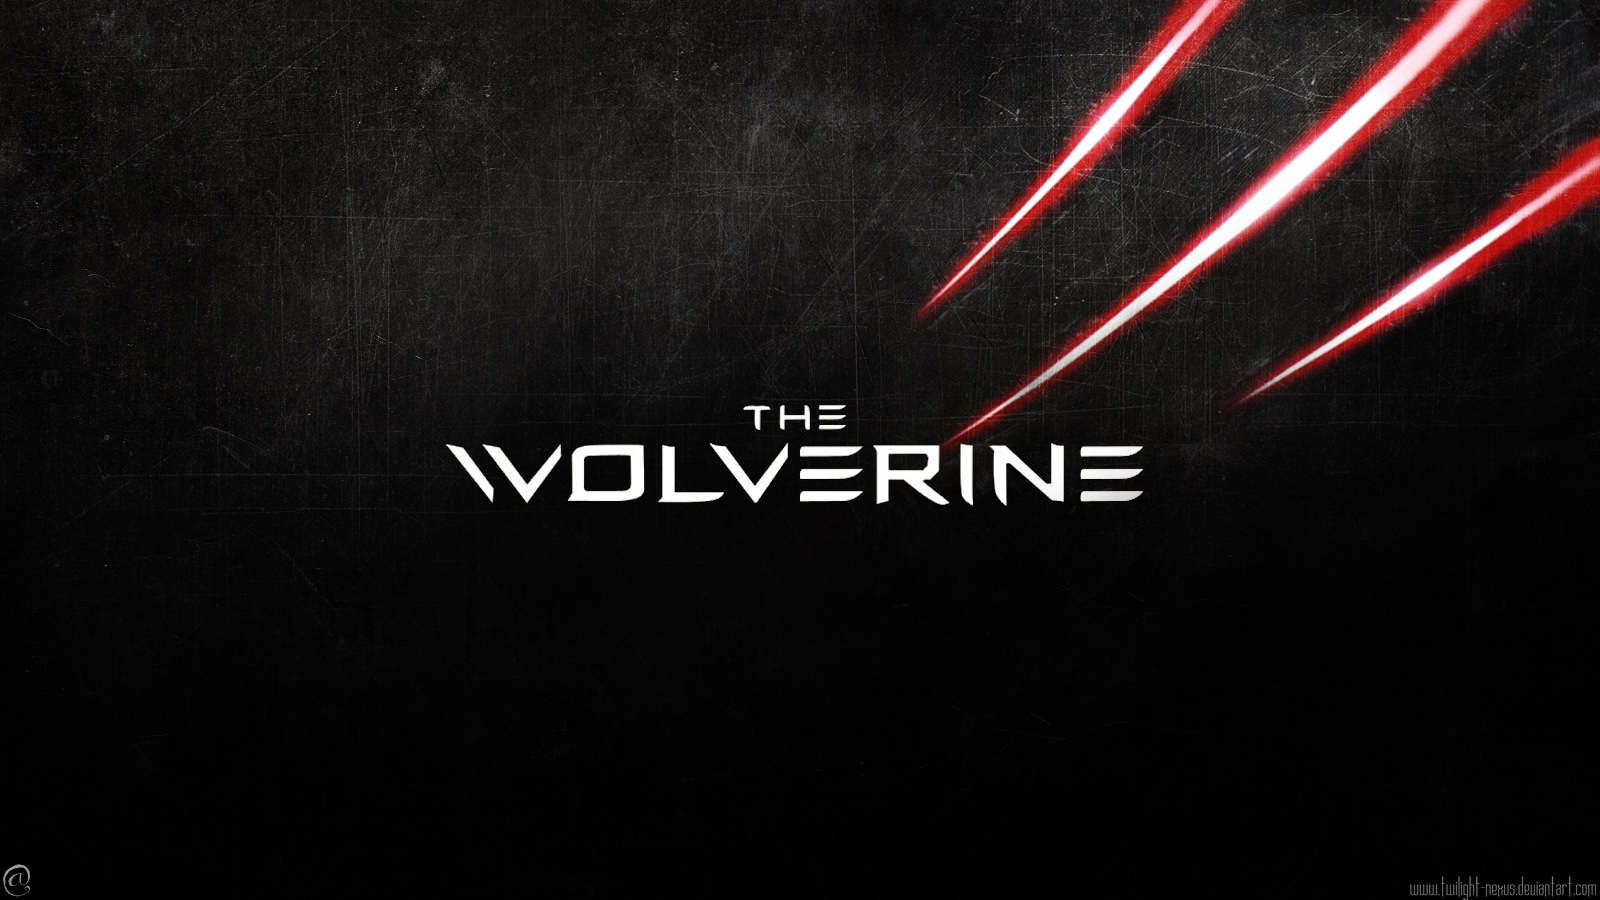 The wolverine wallpaper by twilight nexus on deviantart the wolverine wallpaper by twilight nexus voltagebd Images